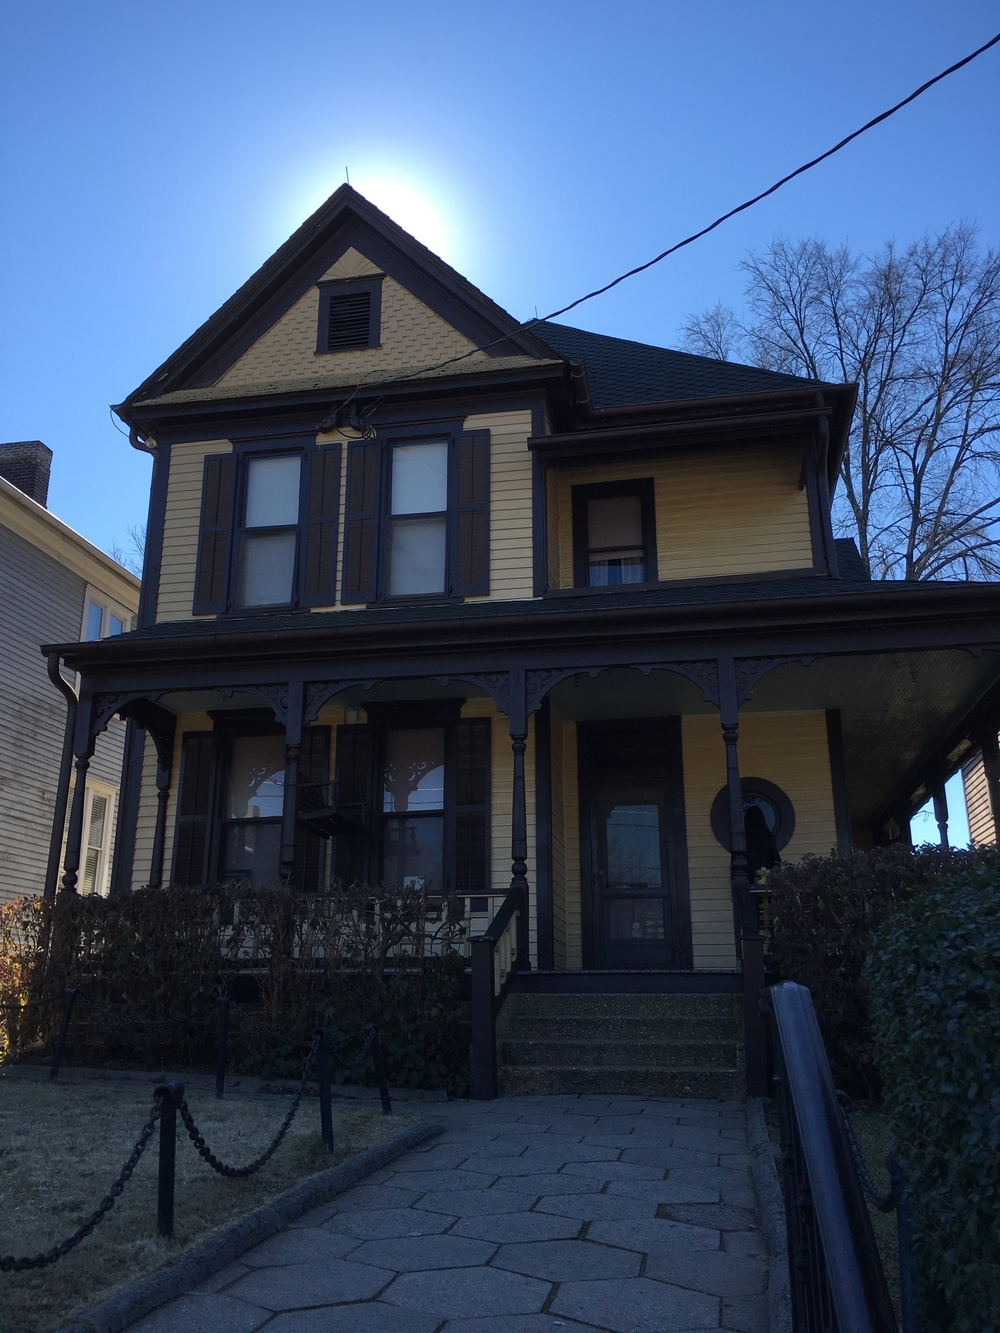 Martin Luther King Jr.'s birth home in the Sweet Auburn neighborhood.